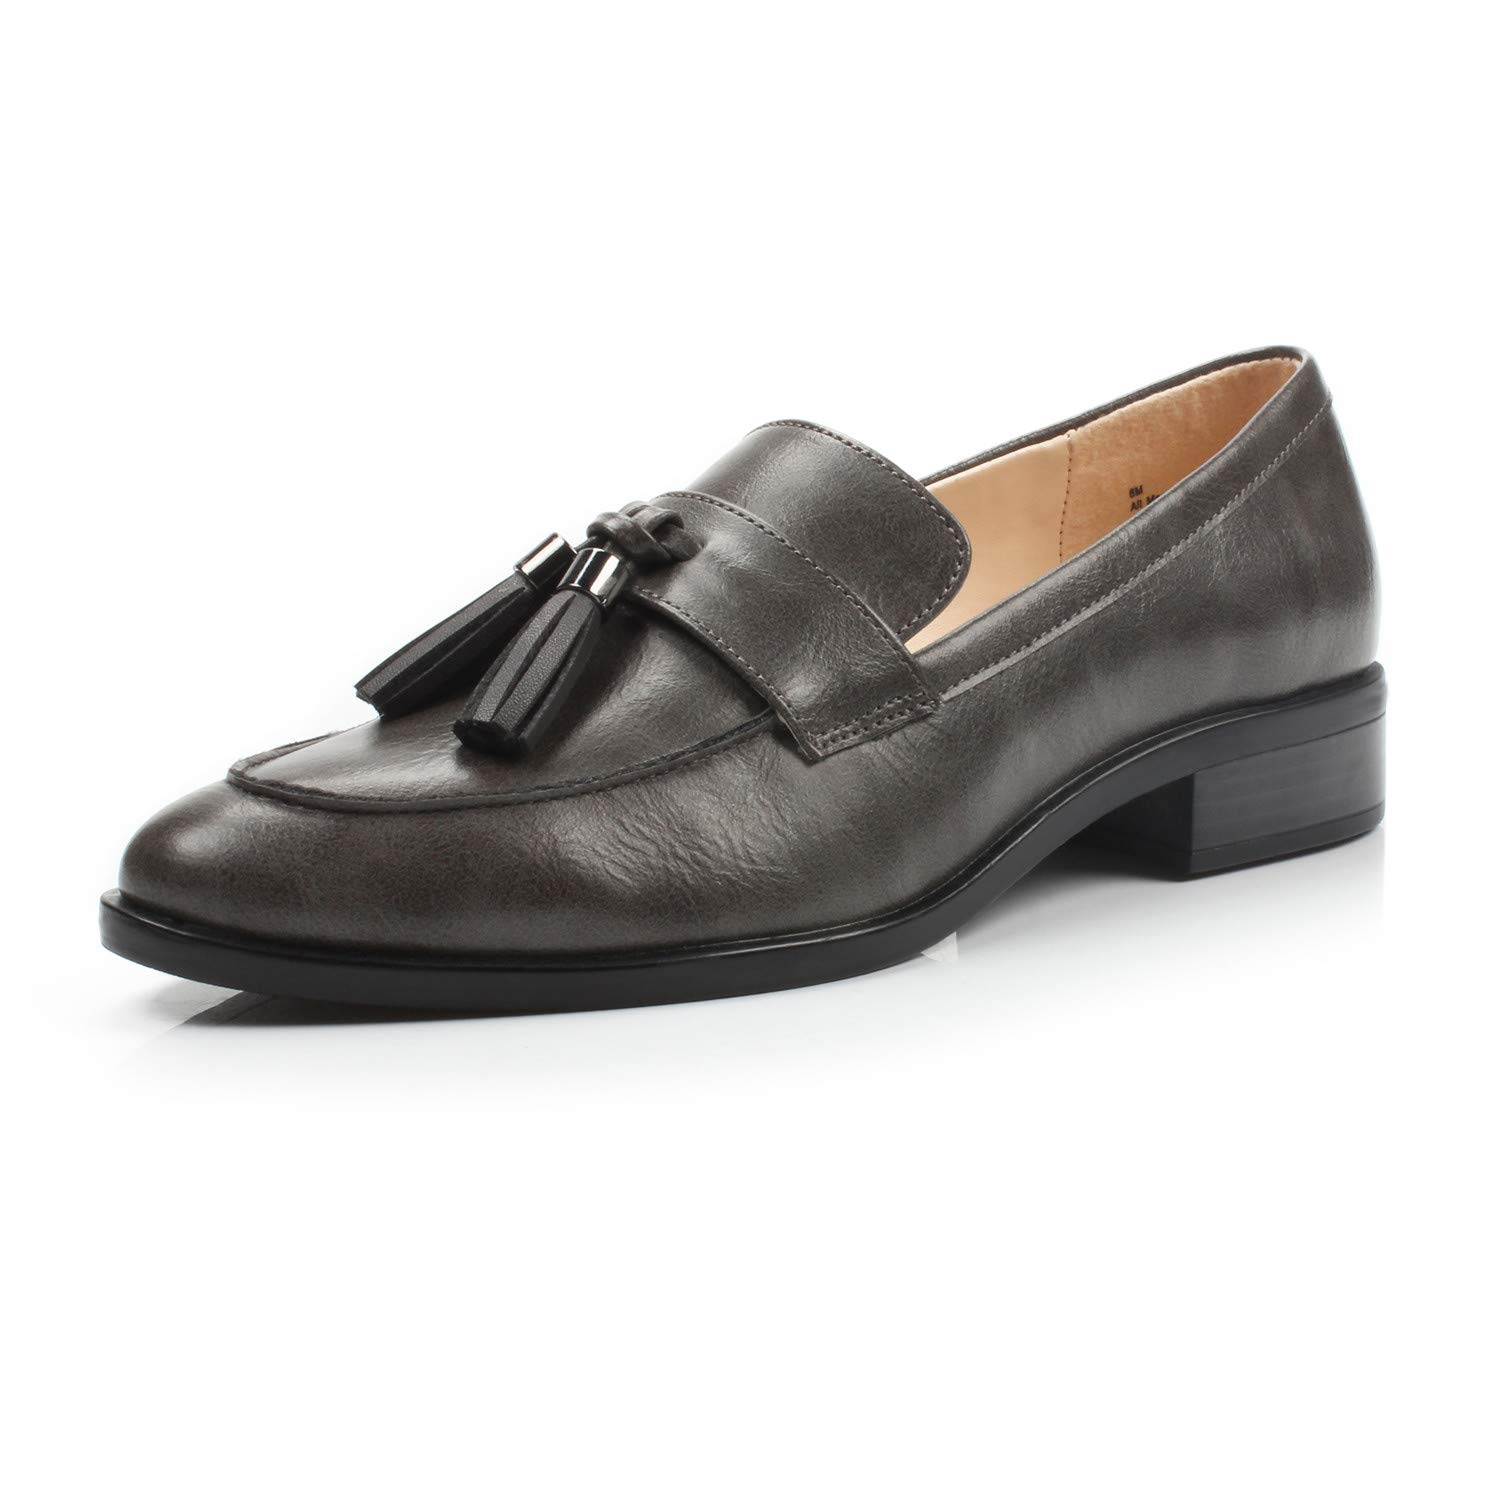 Bertha Dark Grey DUNION Women's Brandon Chain Decorated Penny Loafers Low Heels Almond Toe Casual Daily shoes